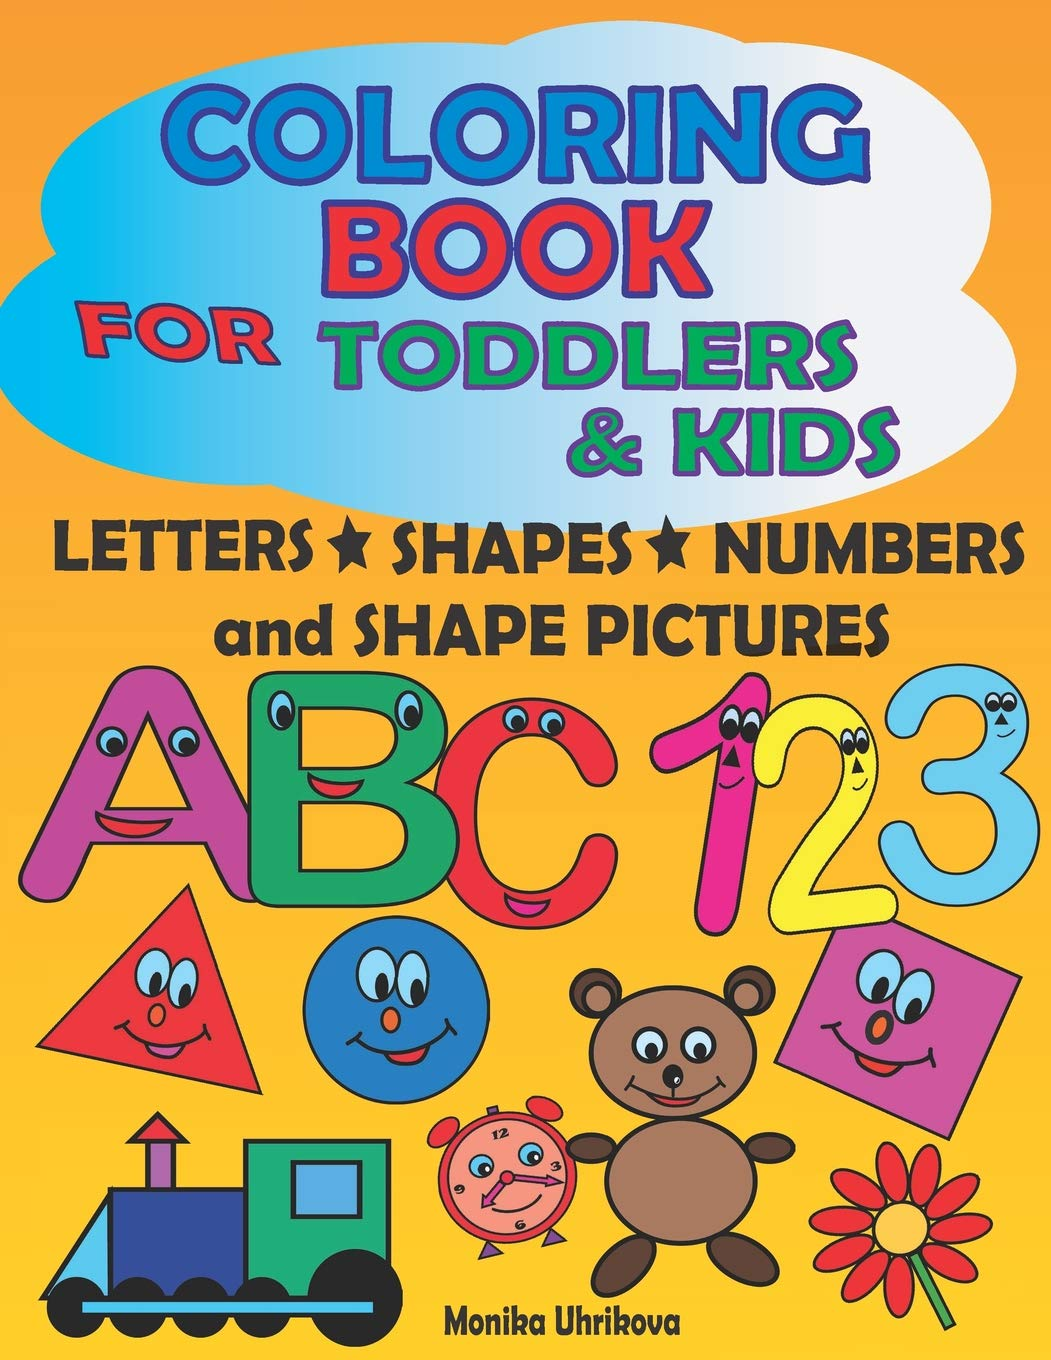 Coloring book for toddlers. Babysitting clipart abc123